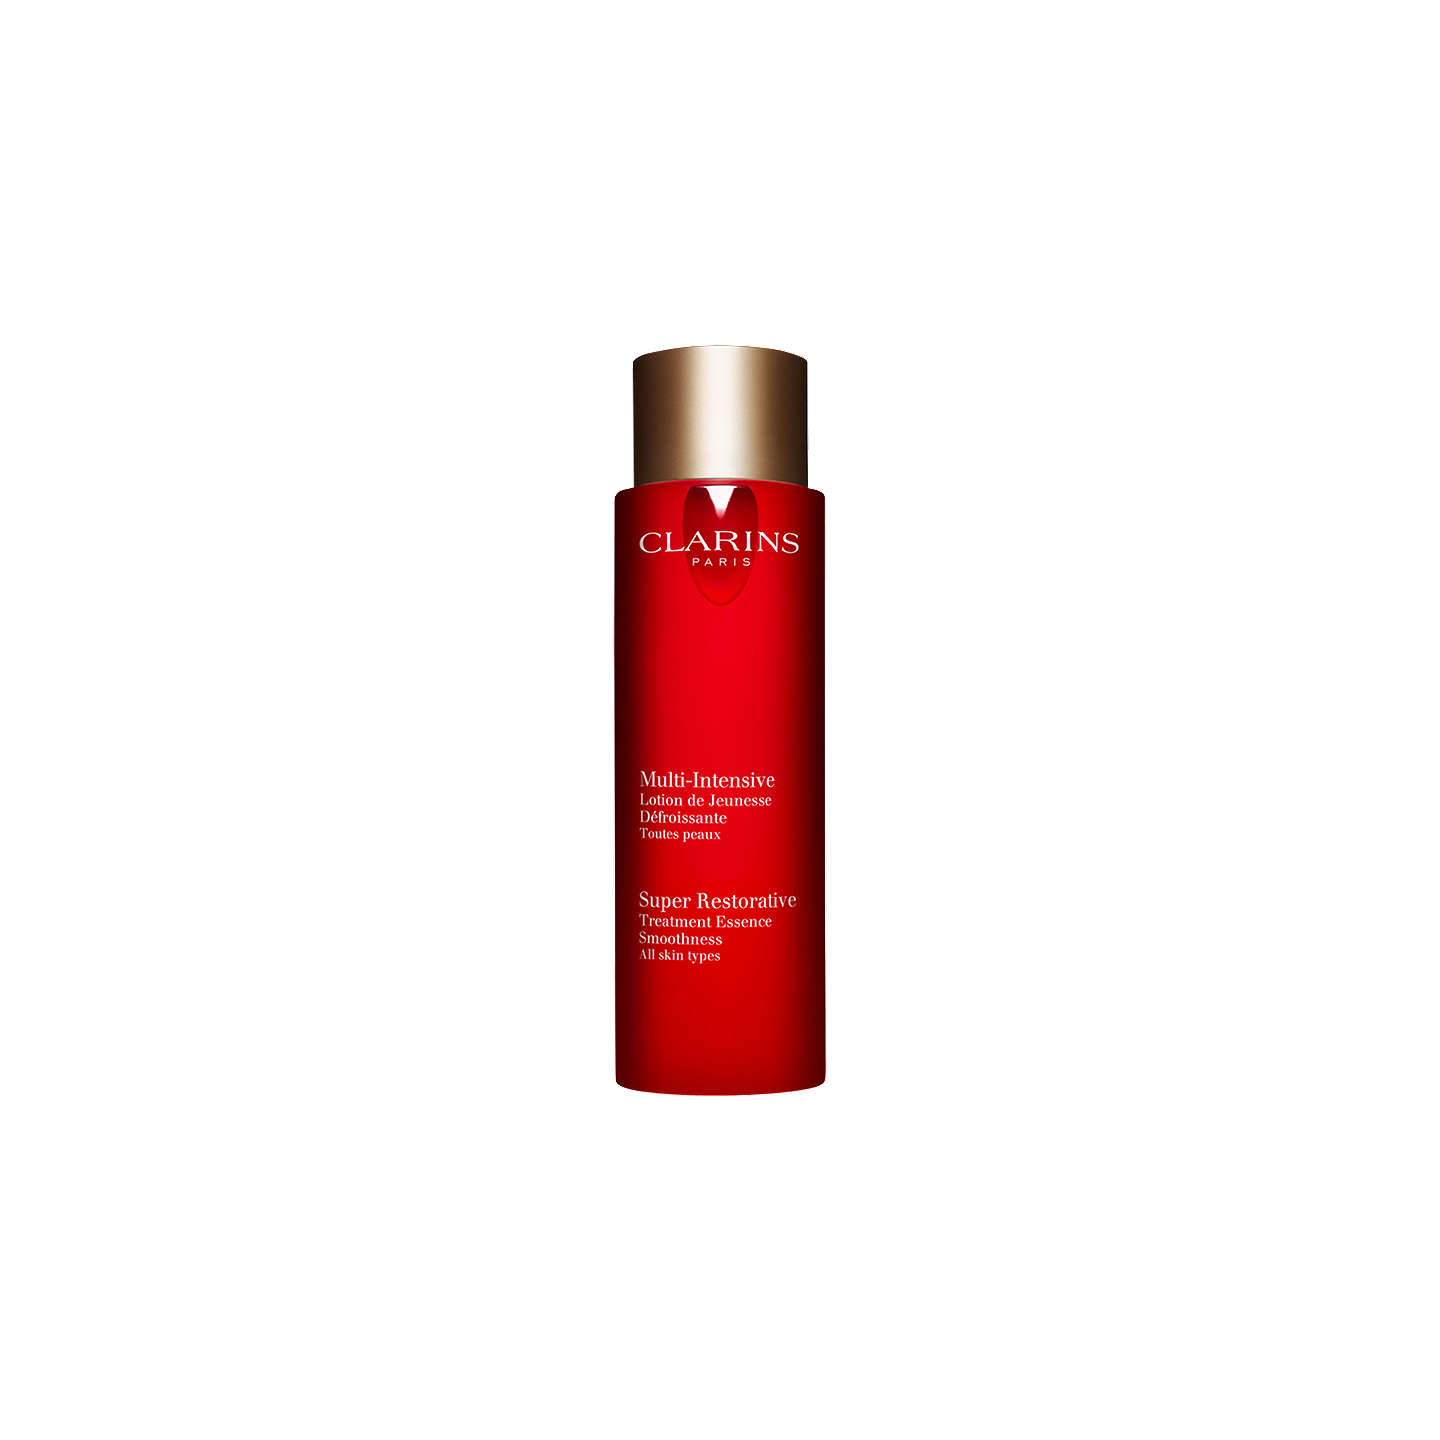 BuyClarins Super Restorative Treatment Essence, Smoothness, 200ml Online at johnlewis.com